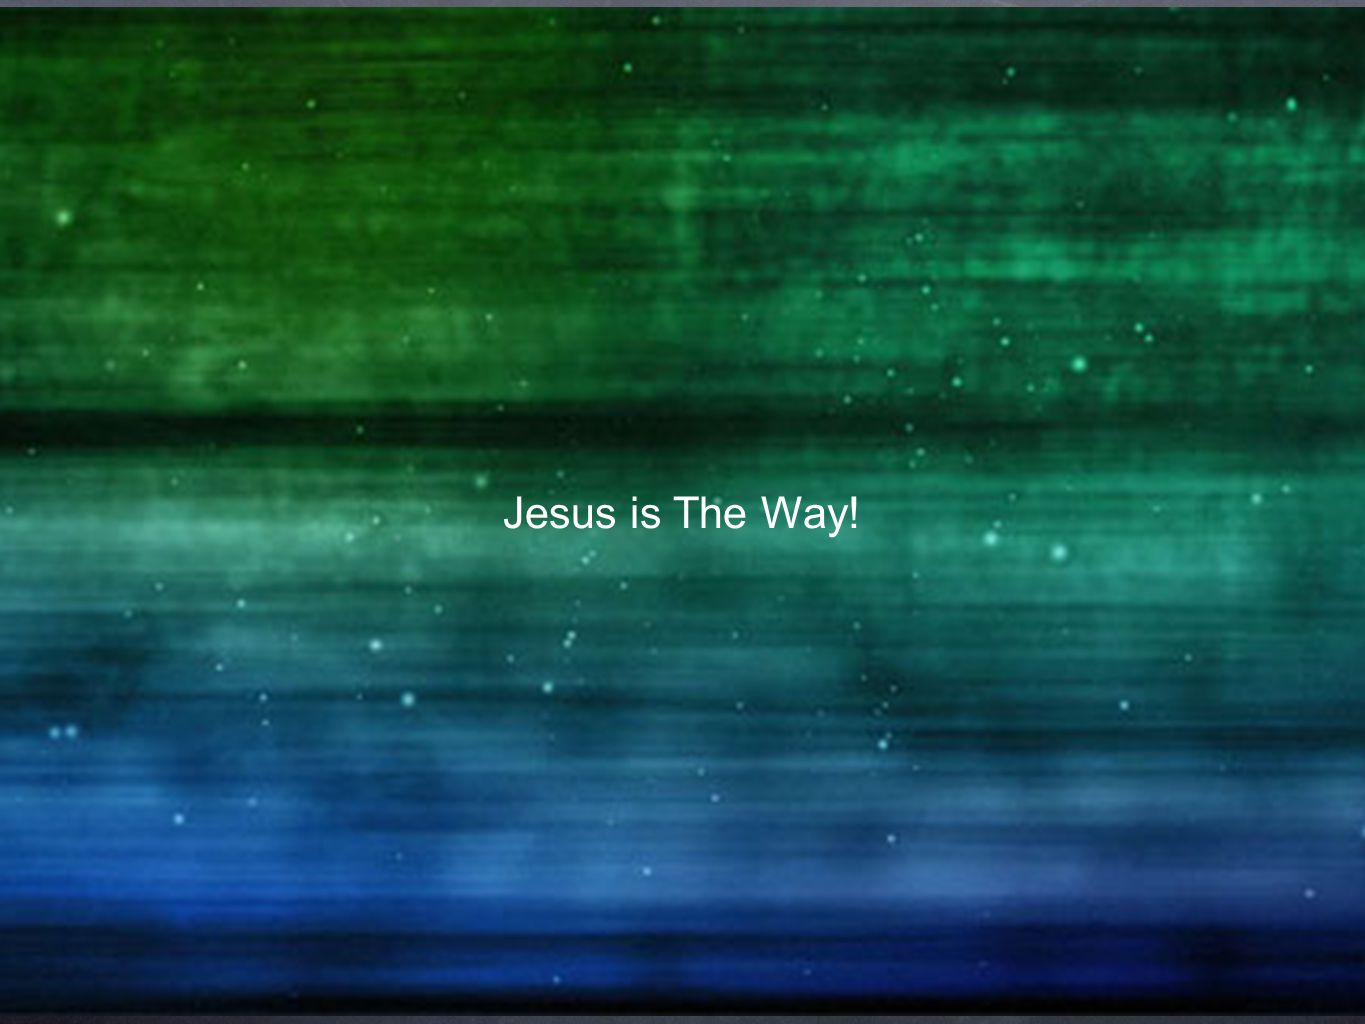 Jesus is The Way!